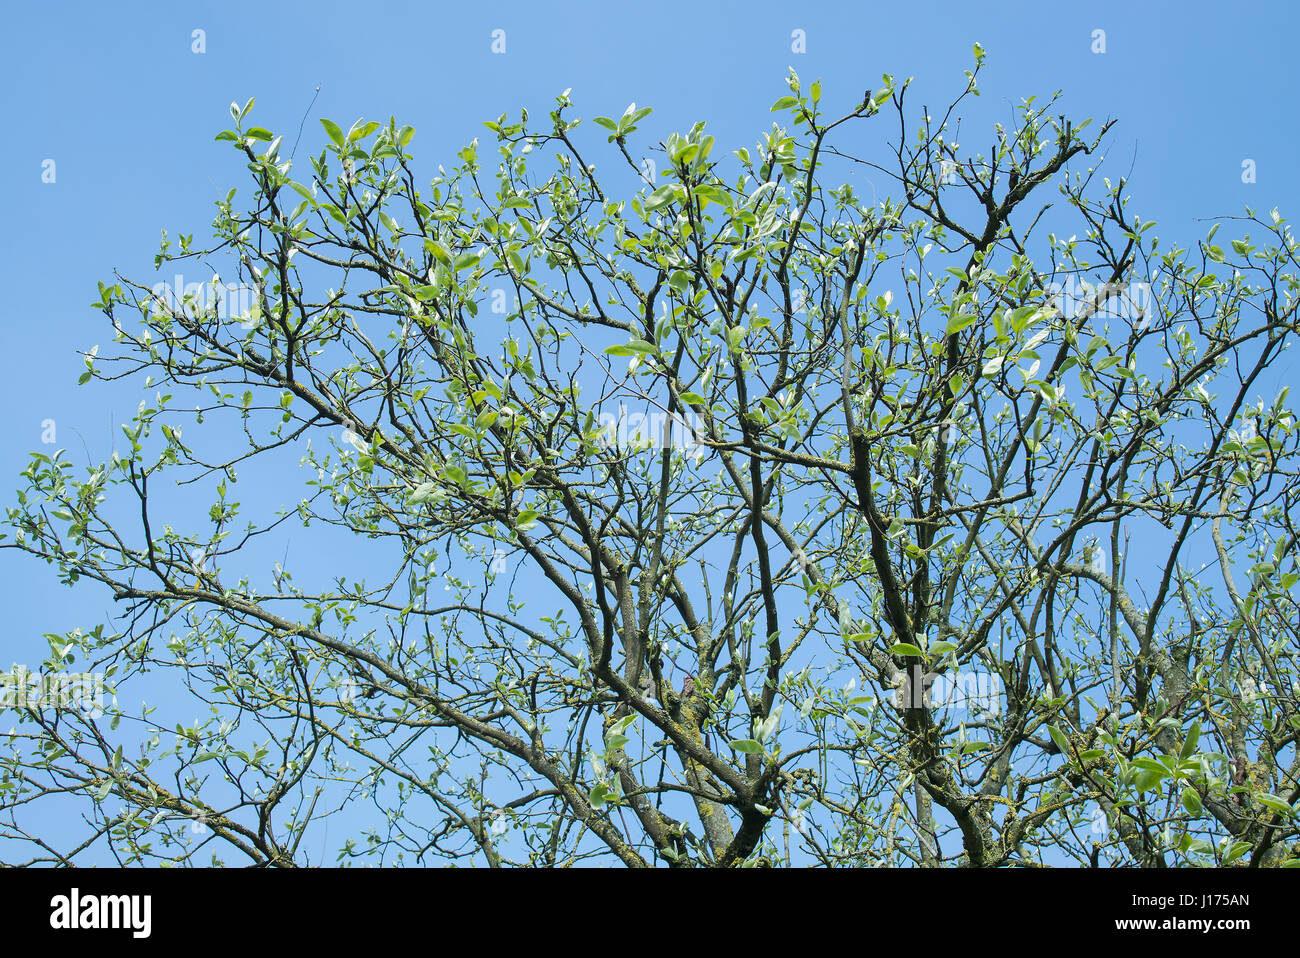 First leaves growing on cydonia oblonga fruit tree after pruning treatment to combat sickness in previous year - Stock Image